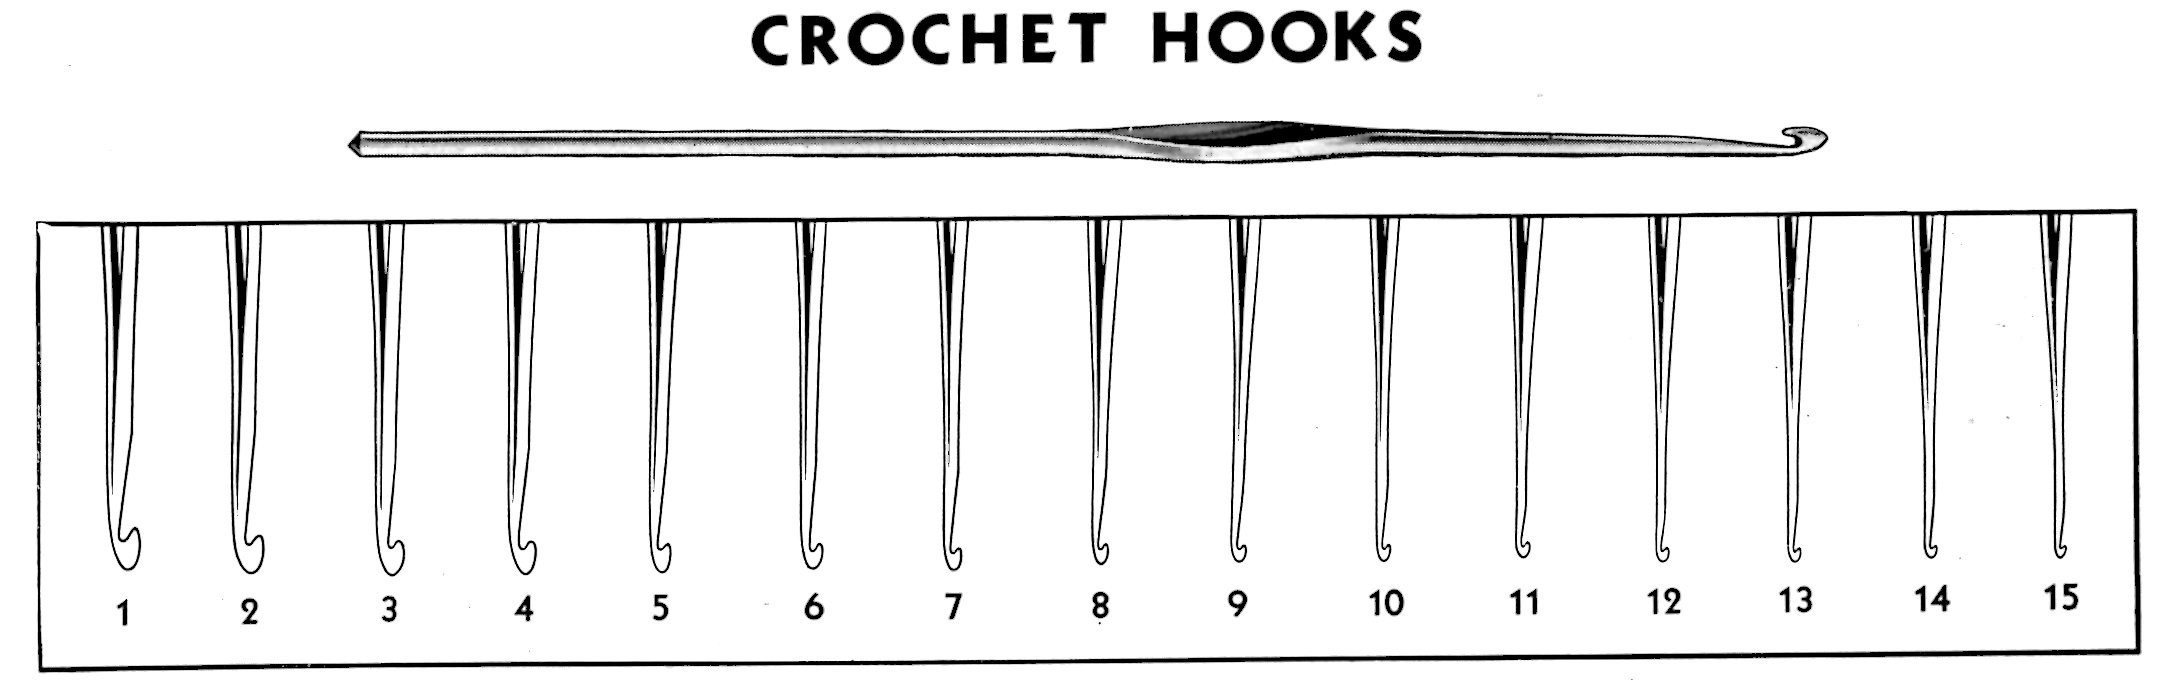 Beautiful Cotton Thread Size Chart Archives Vintage Crafts and More Crochet Hook Size Chart Of Marvelous 42 Models Crochet Hook Size Chart